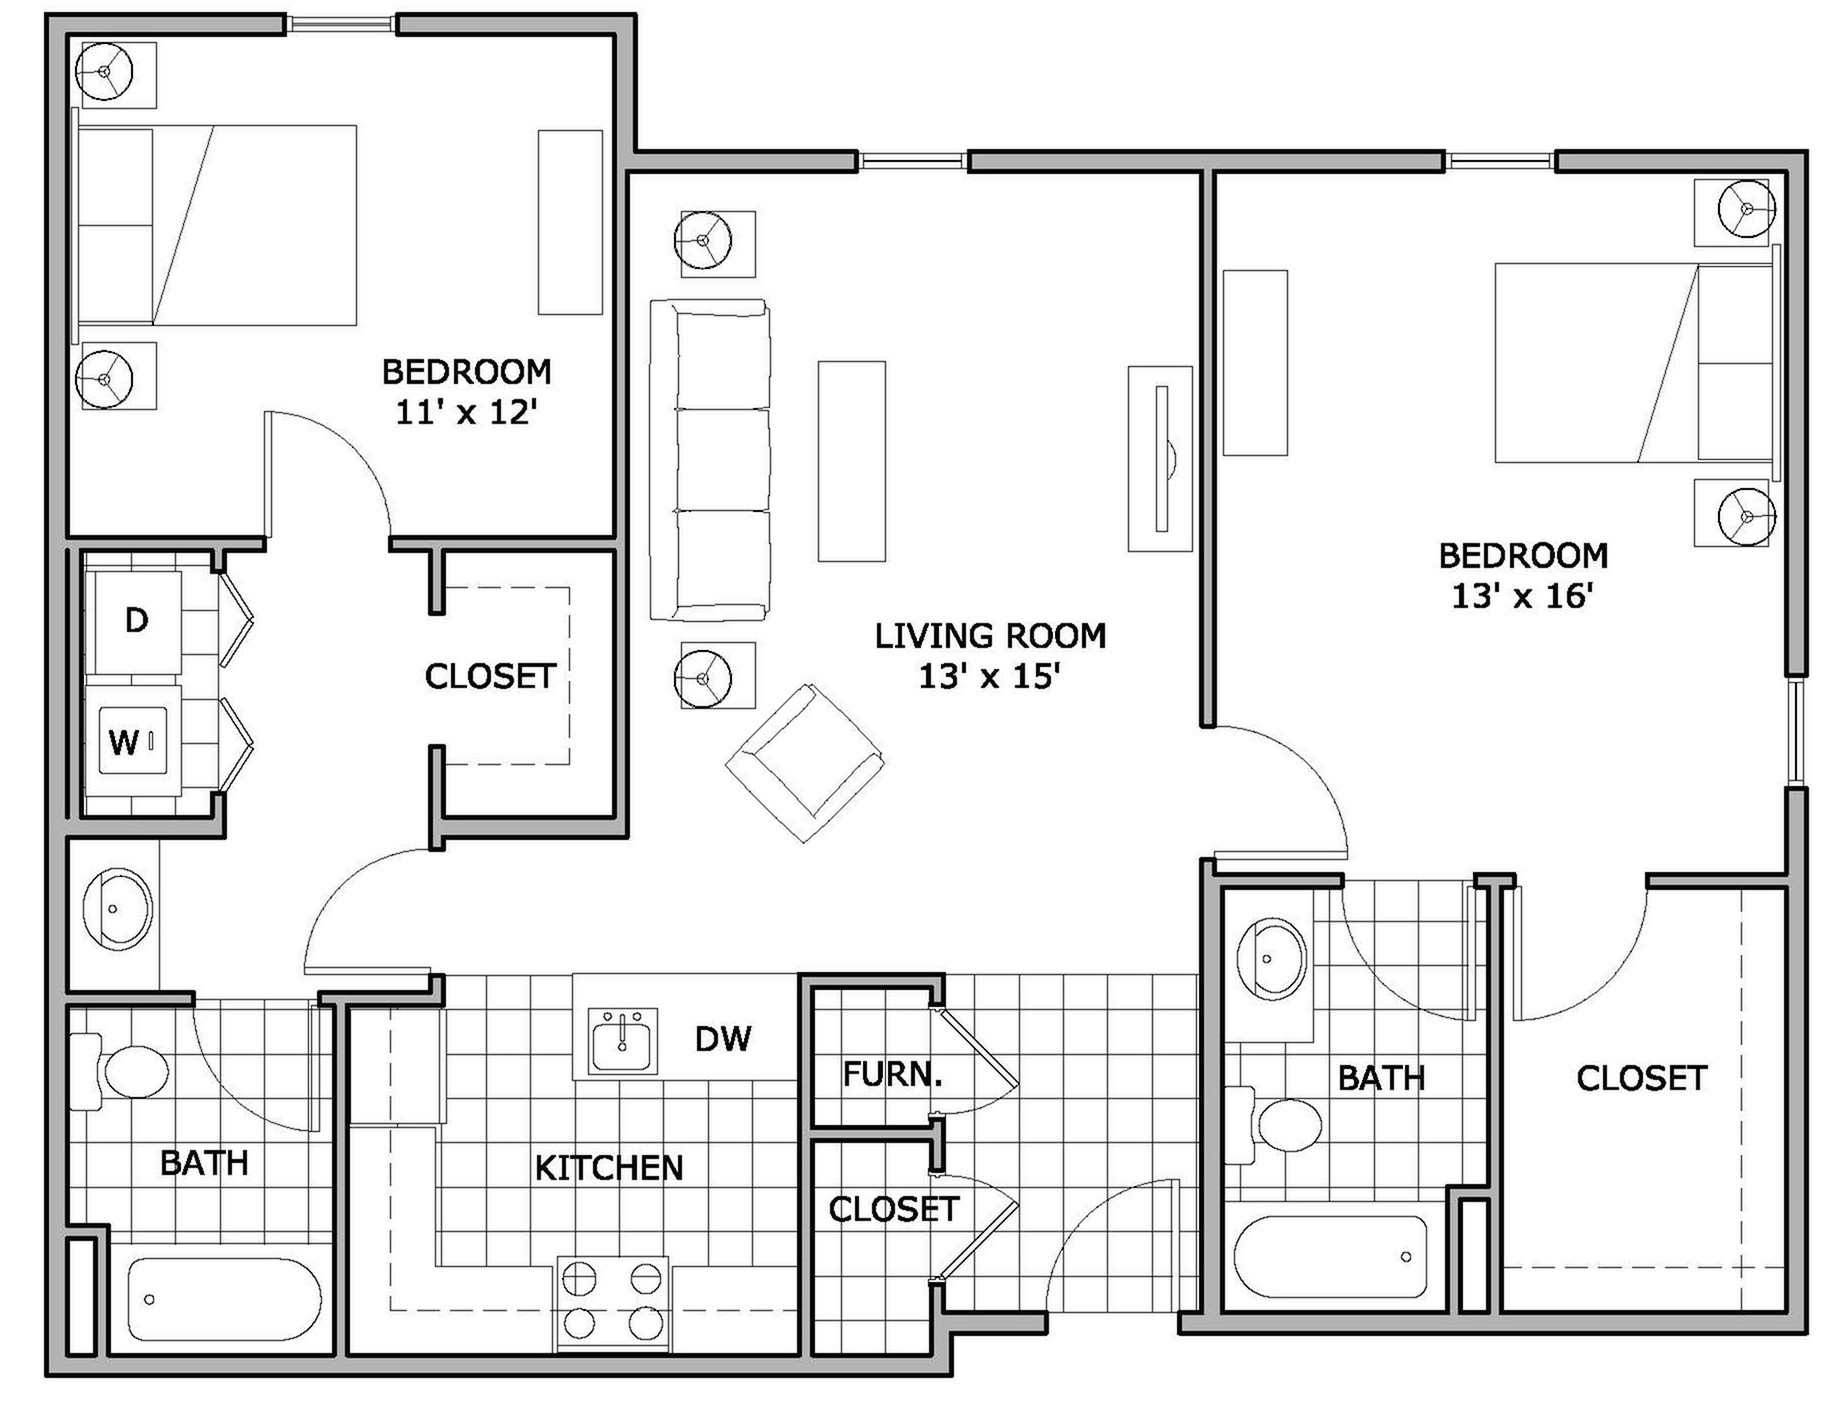 2 bed 2 bathapartment in springfield mo the abbey for Apartment floor plans